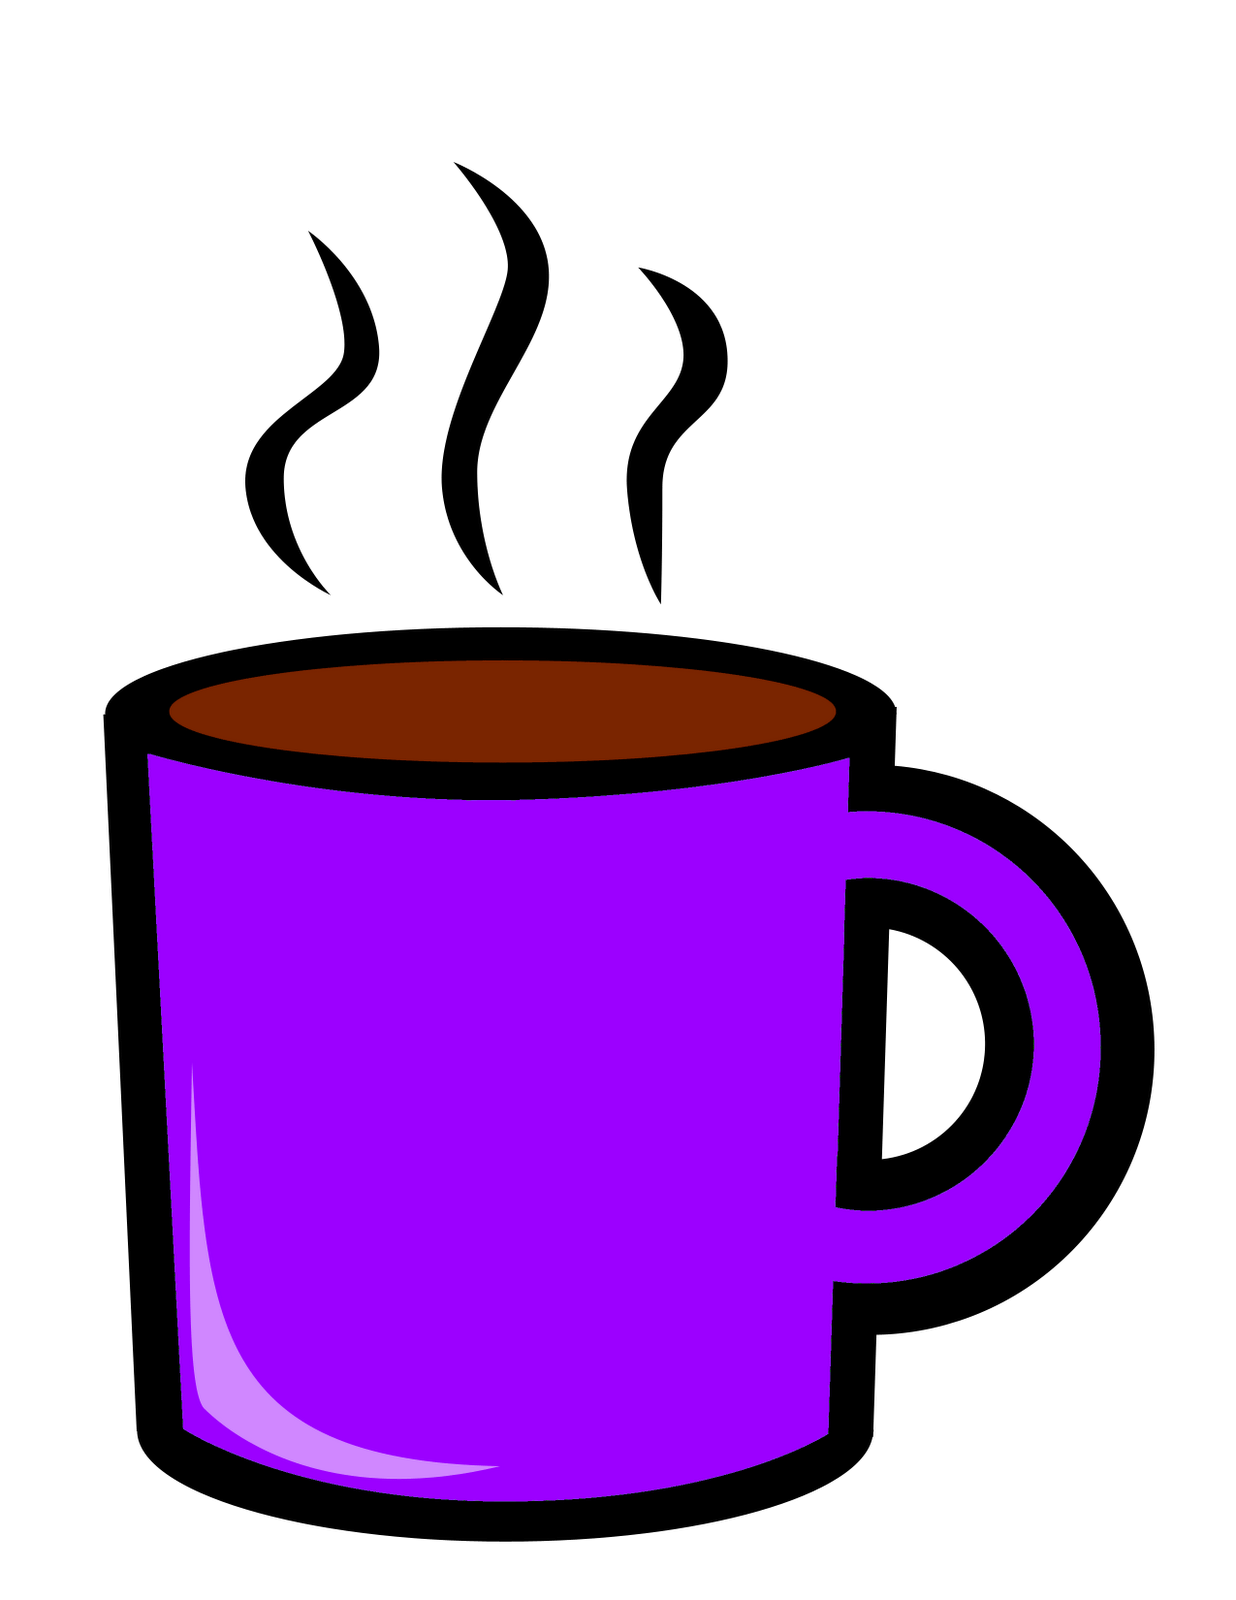 Beans no background hanslodge. Clipart winter coffee